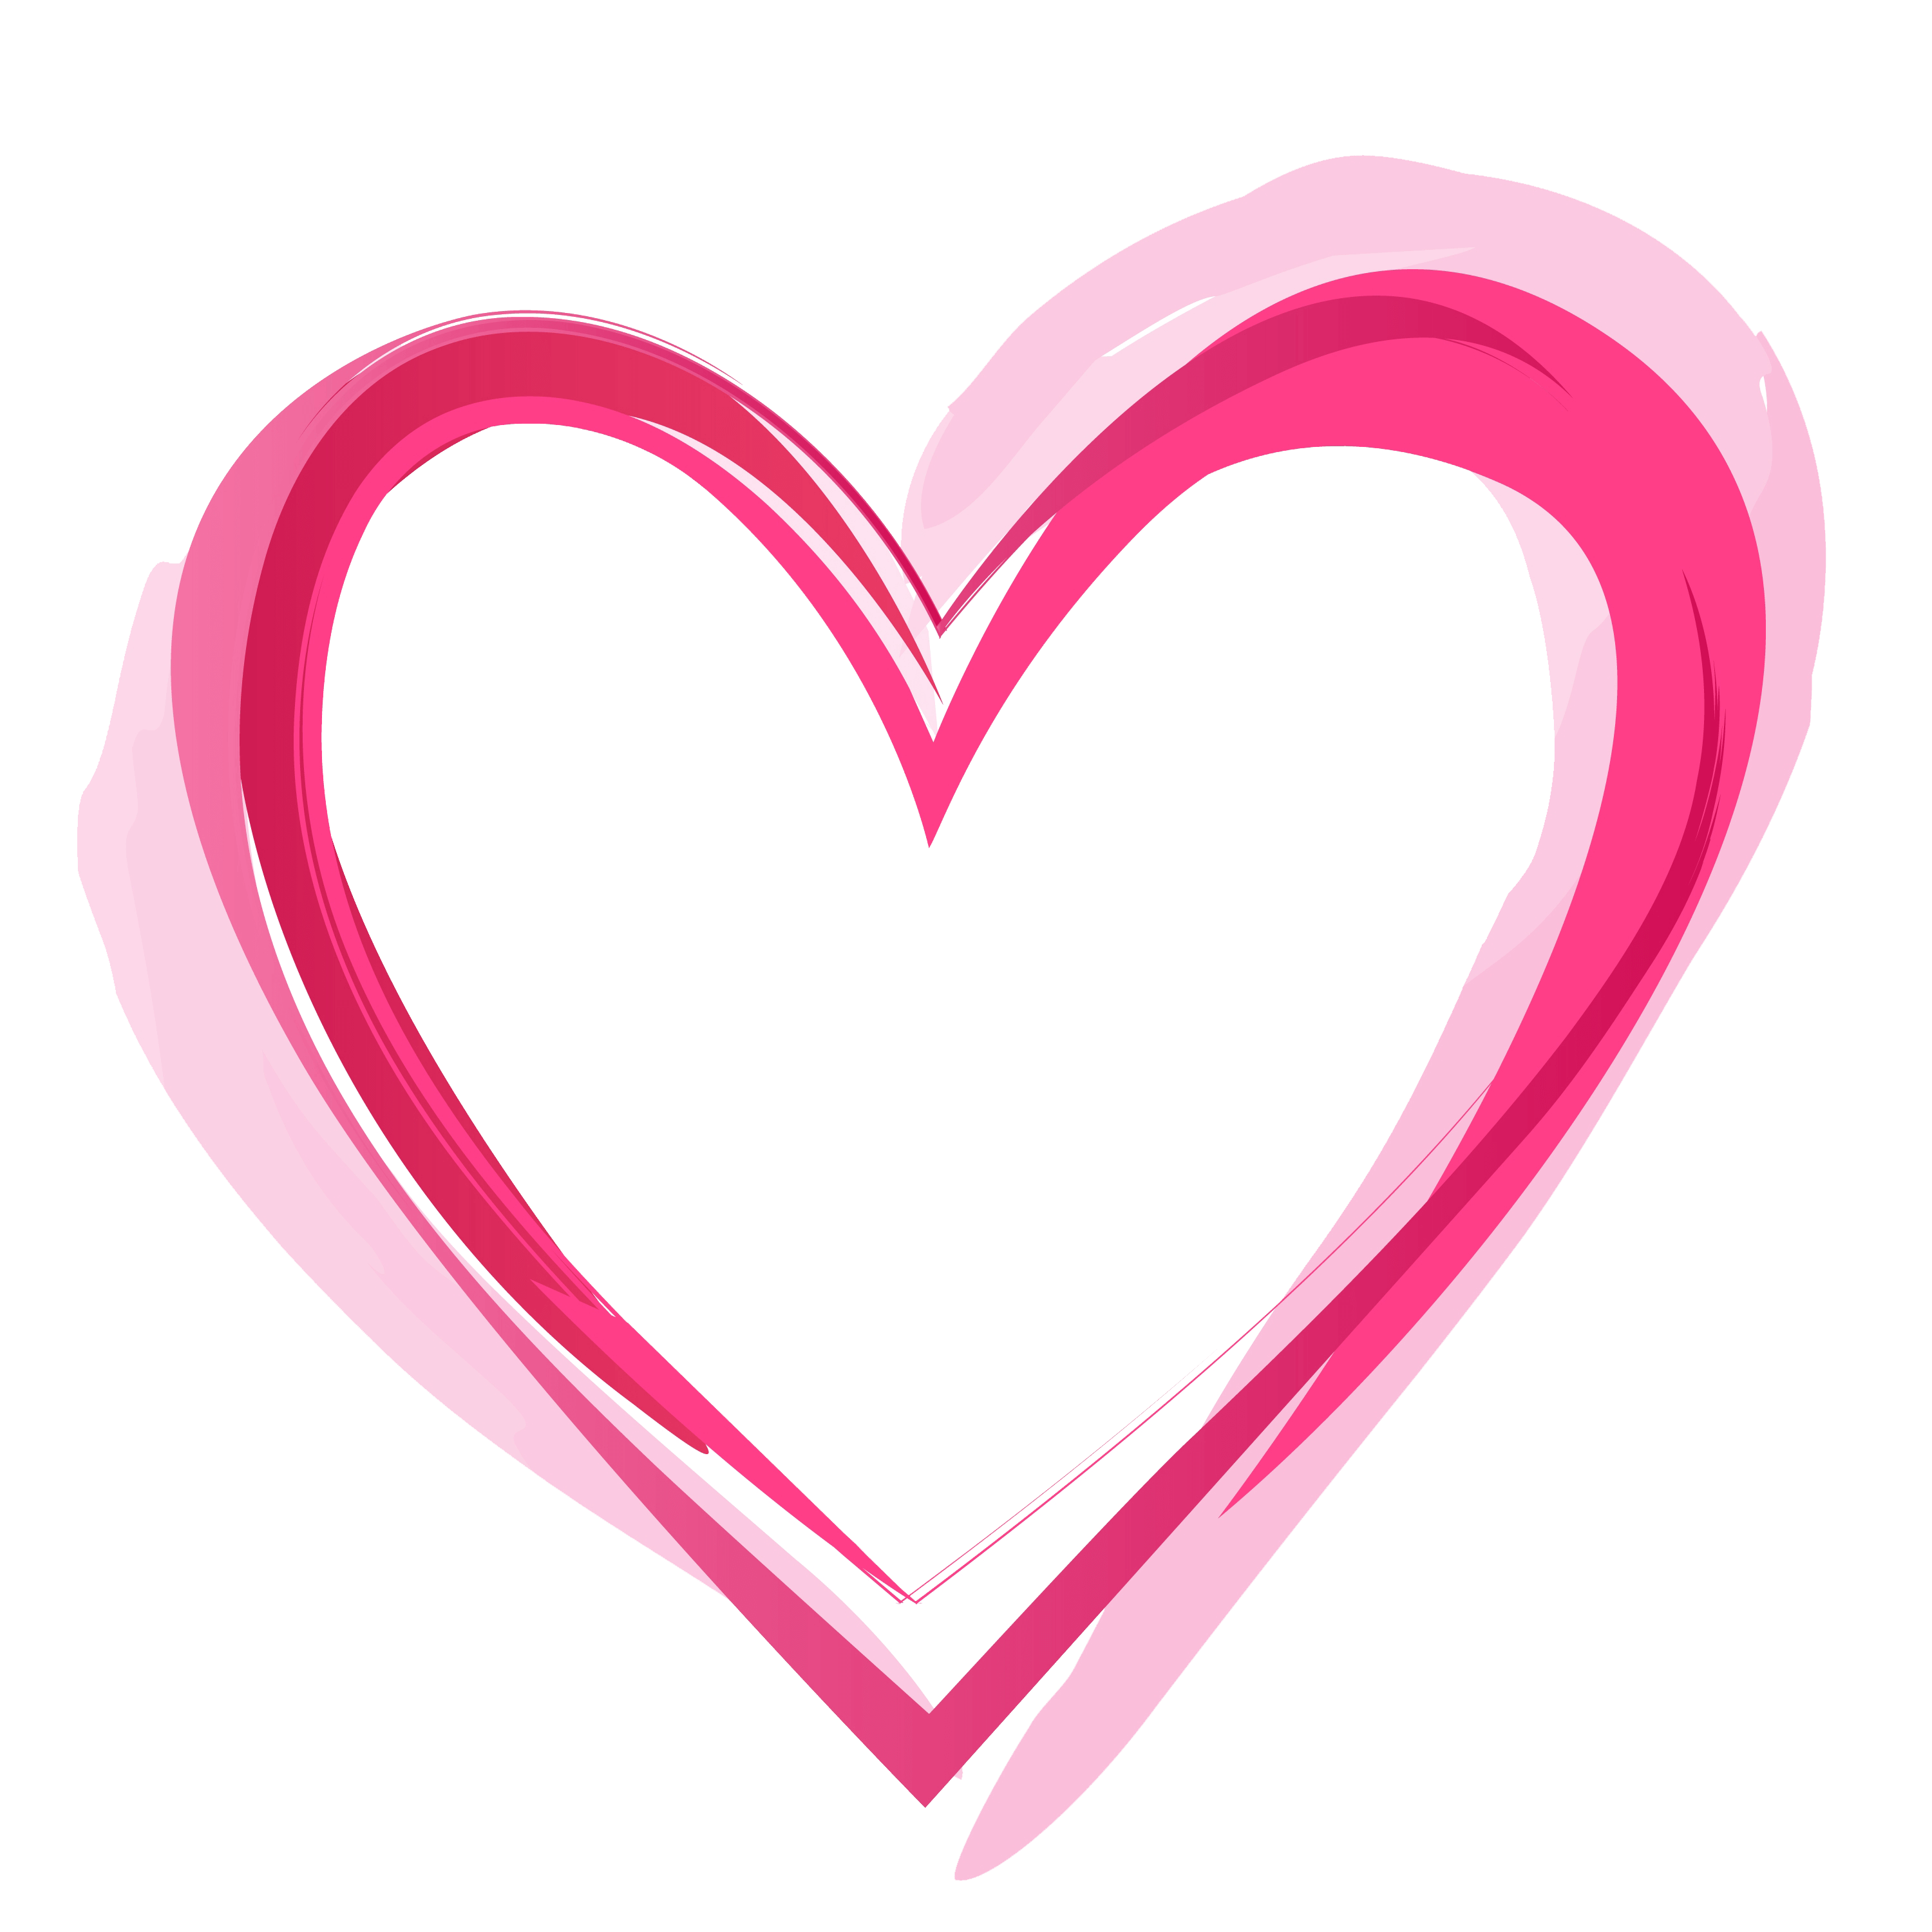 Heart, png pink. Heart pic